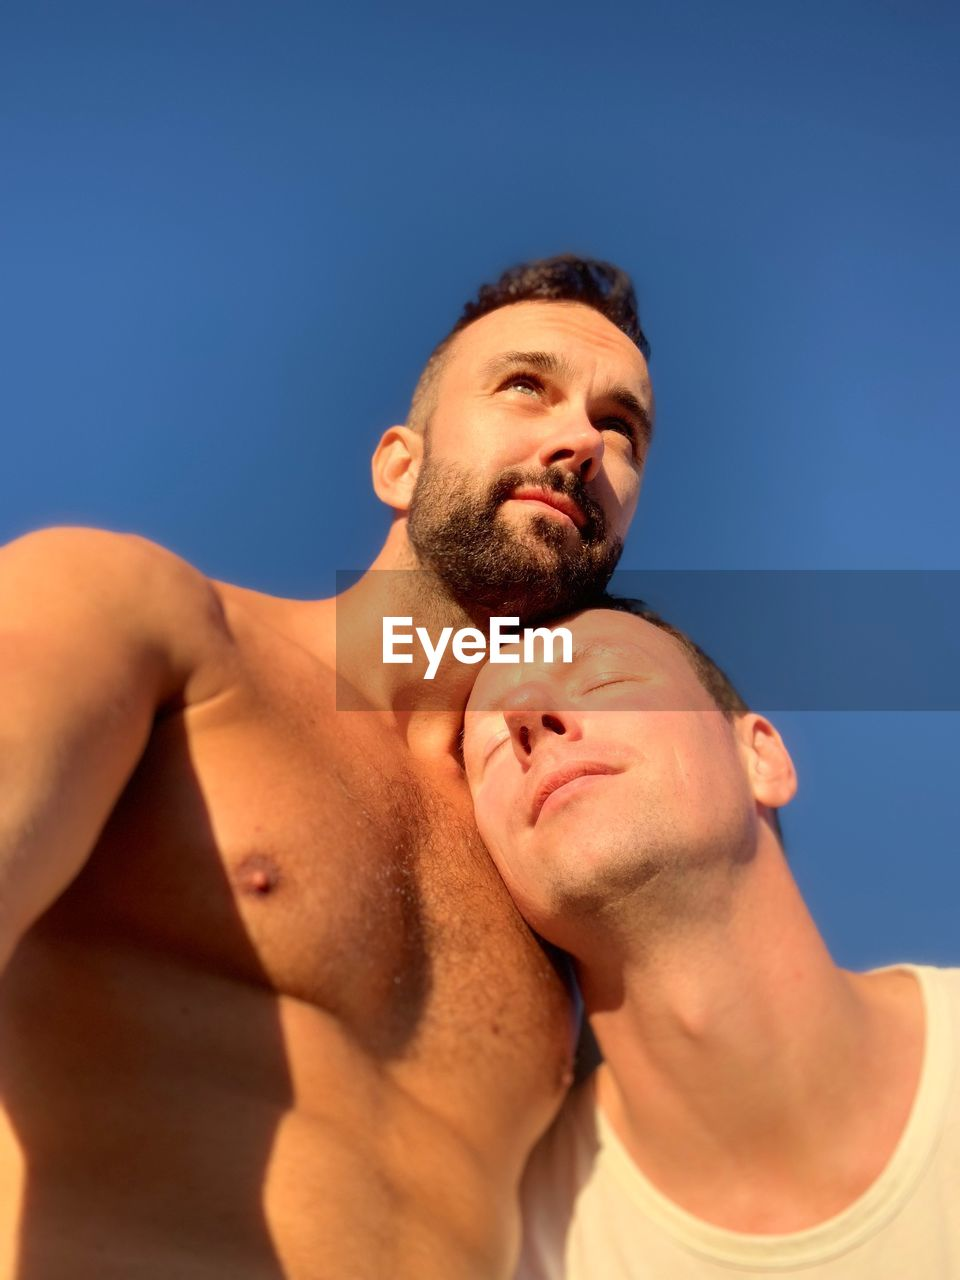 Low Angle View Of Gay Men Against Blue Sky During Sunny Day